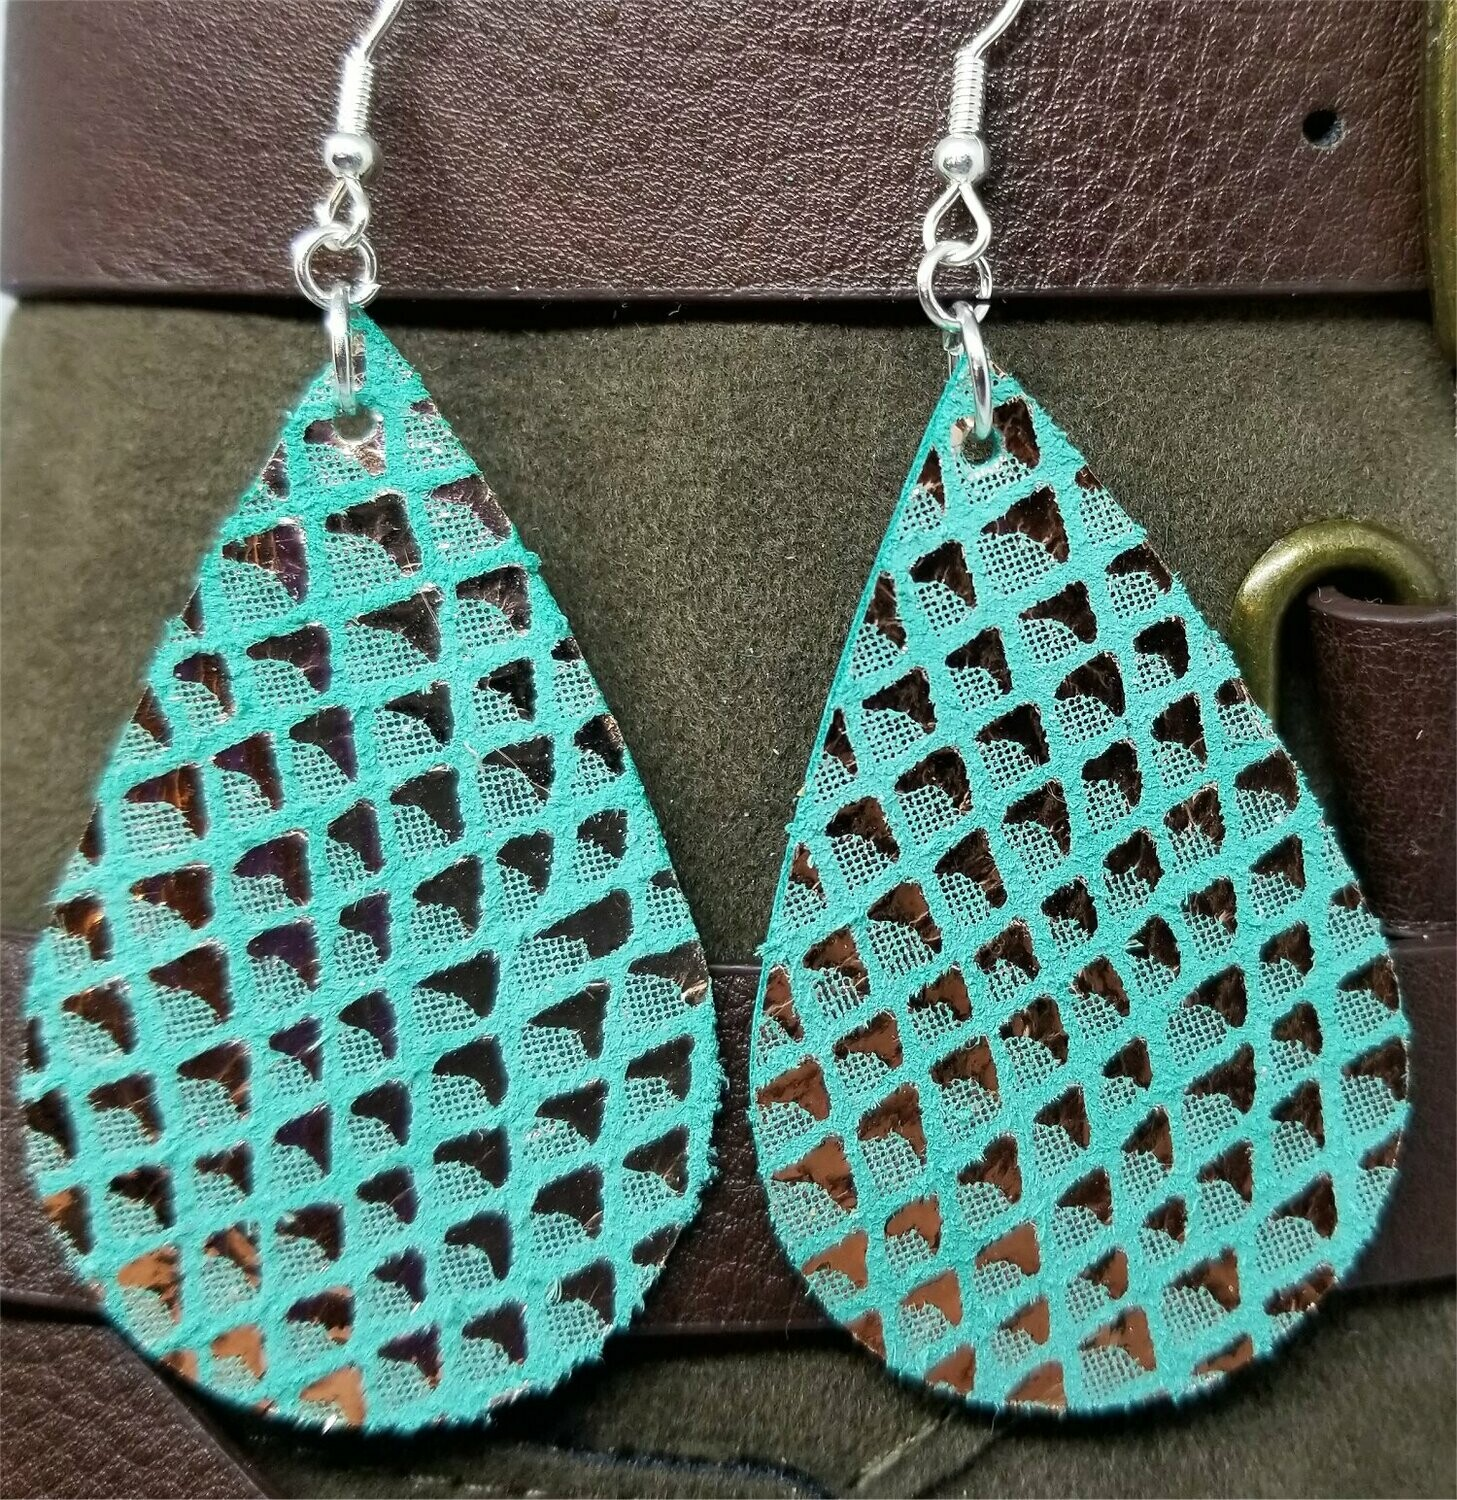 Turquoise Colored Tear Drop Shaped Real Leather Earrings with Metallic Gold Diamond Shapes